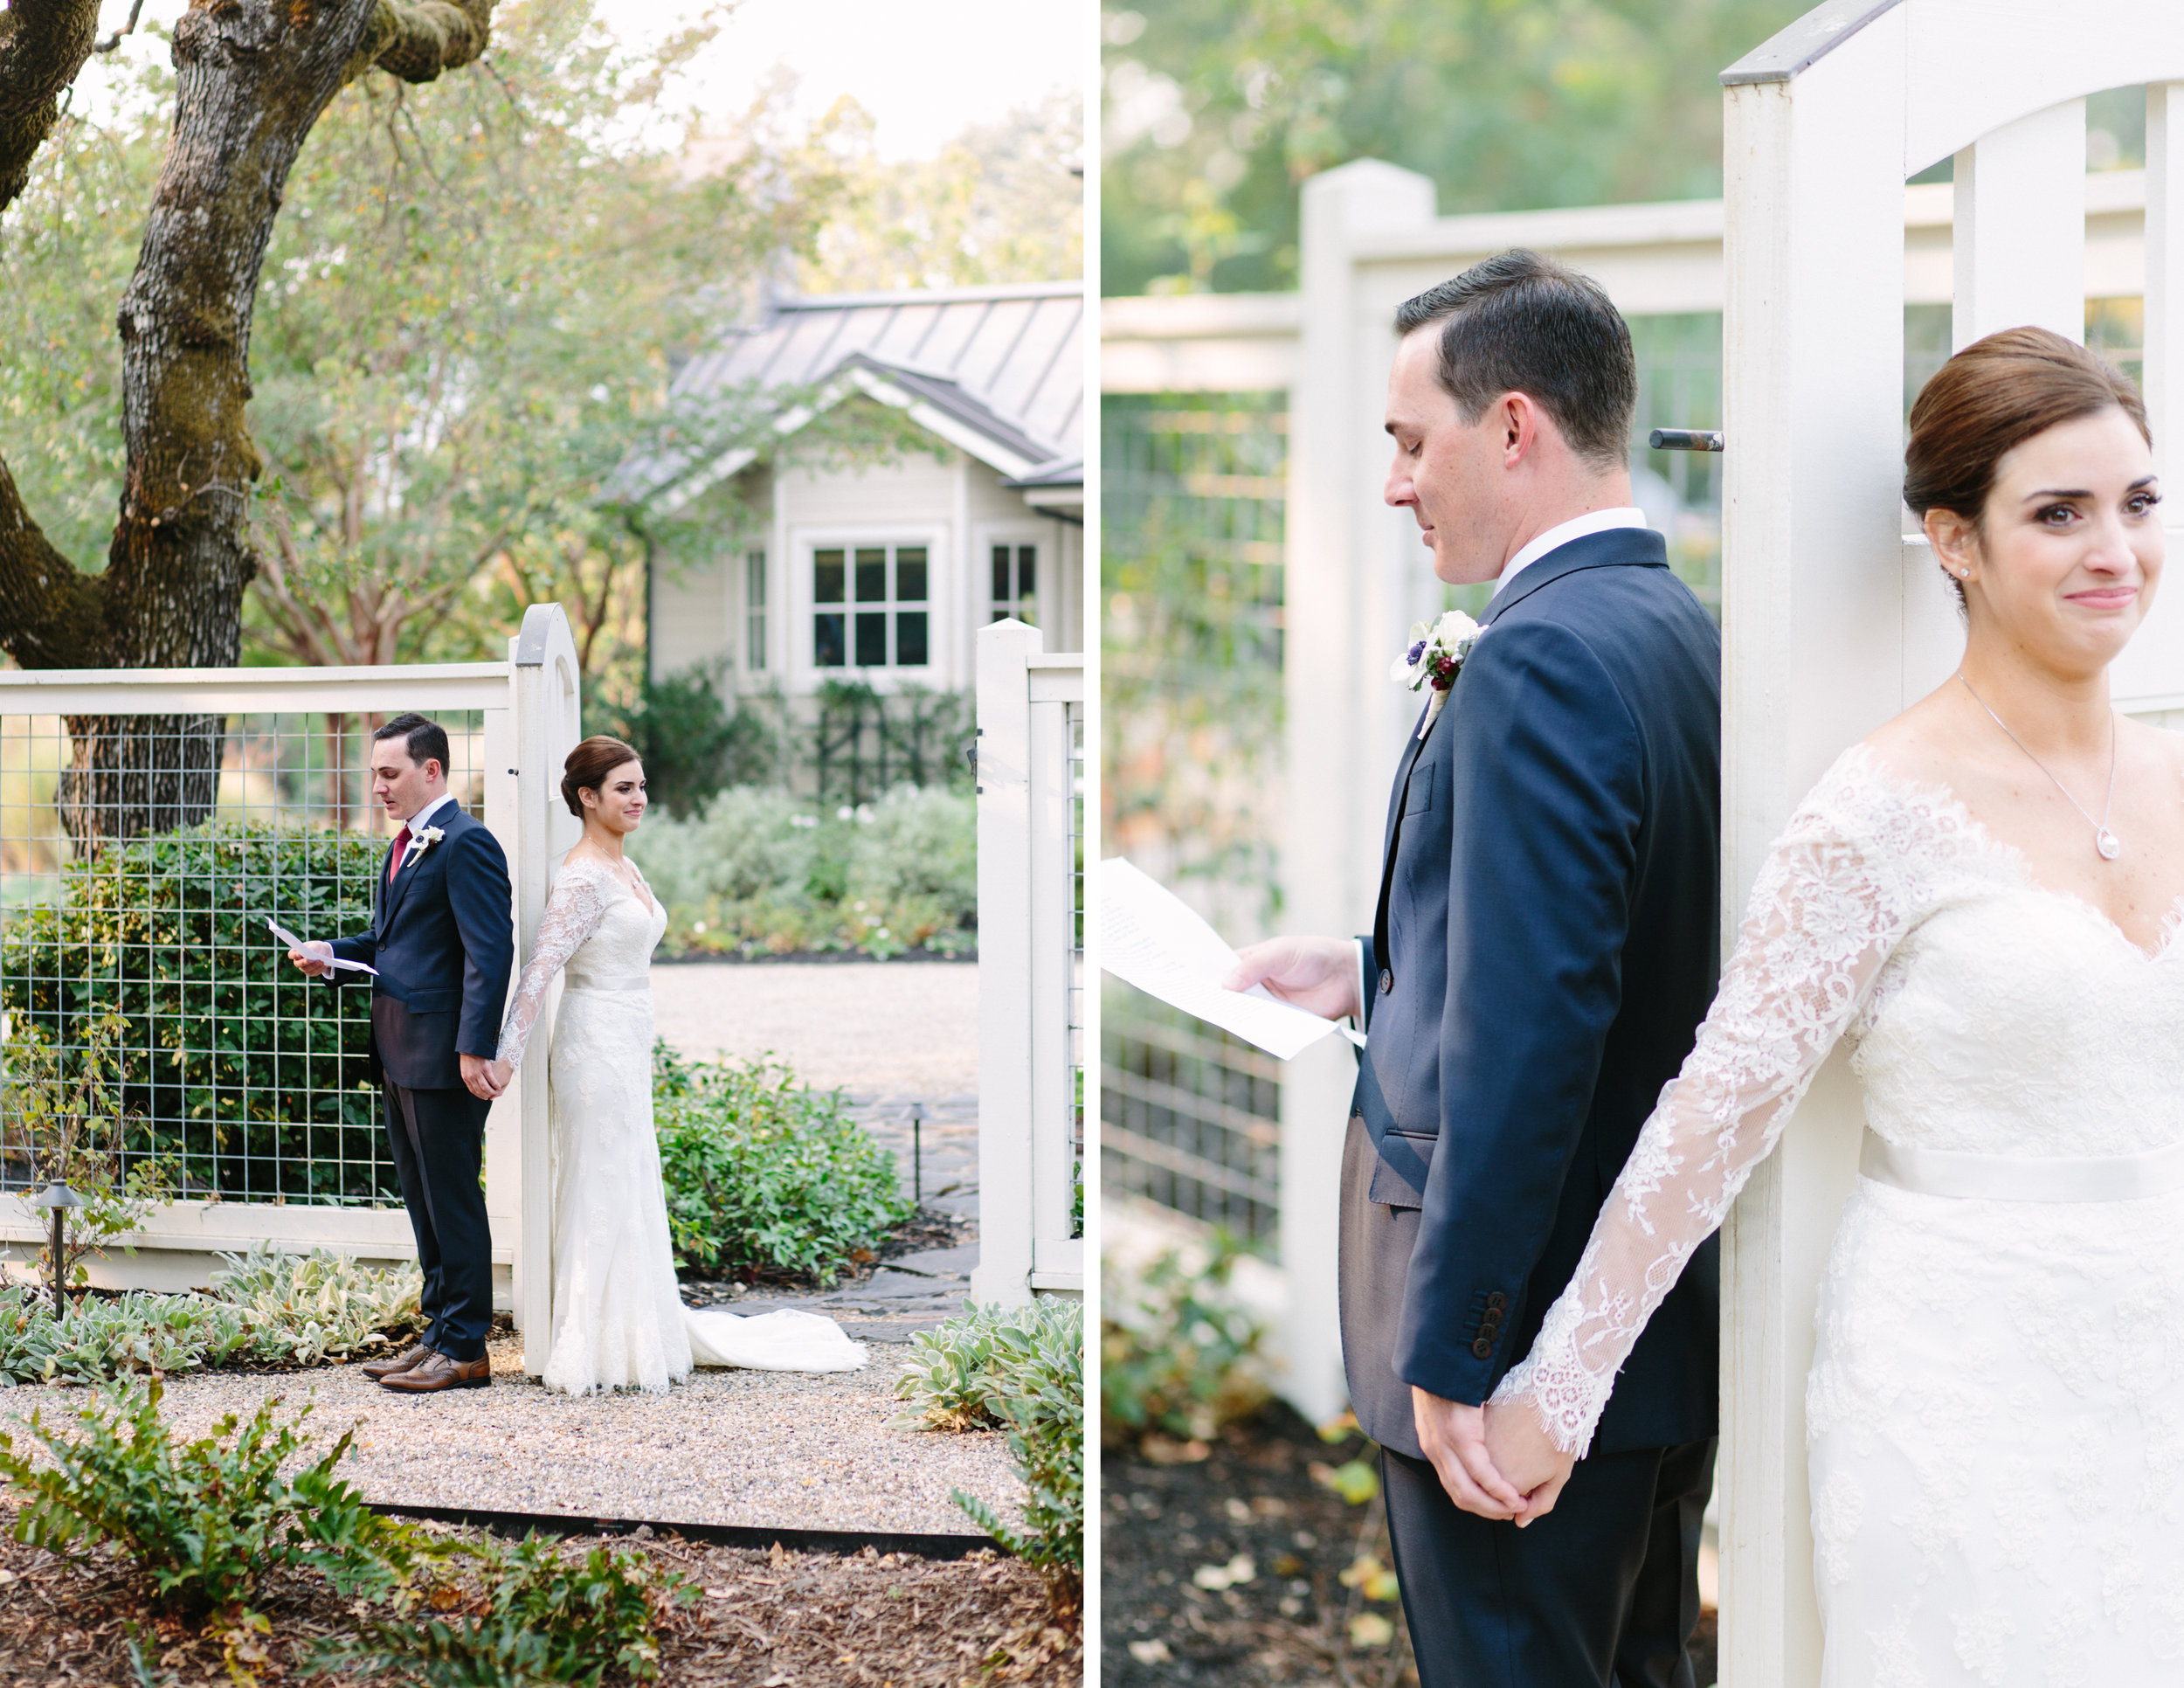 sonoma autumn wedding 7.jpg